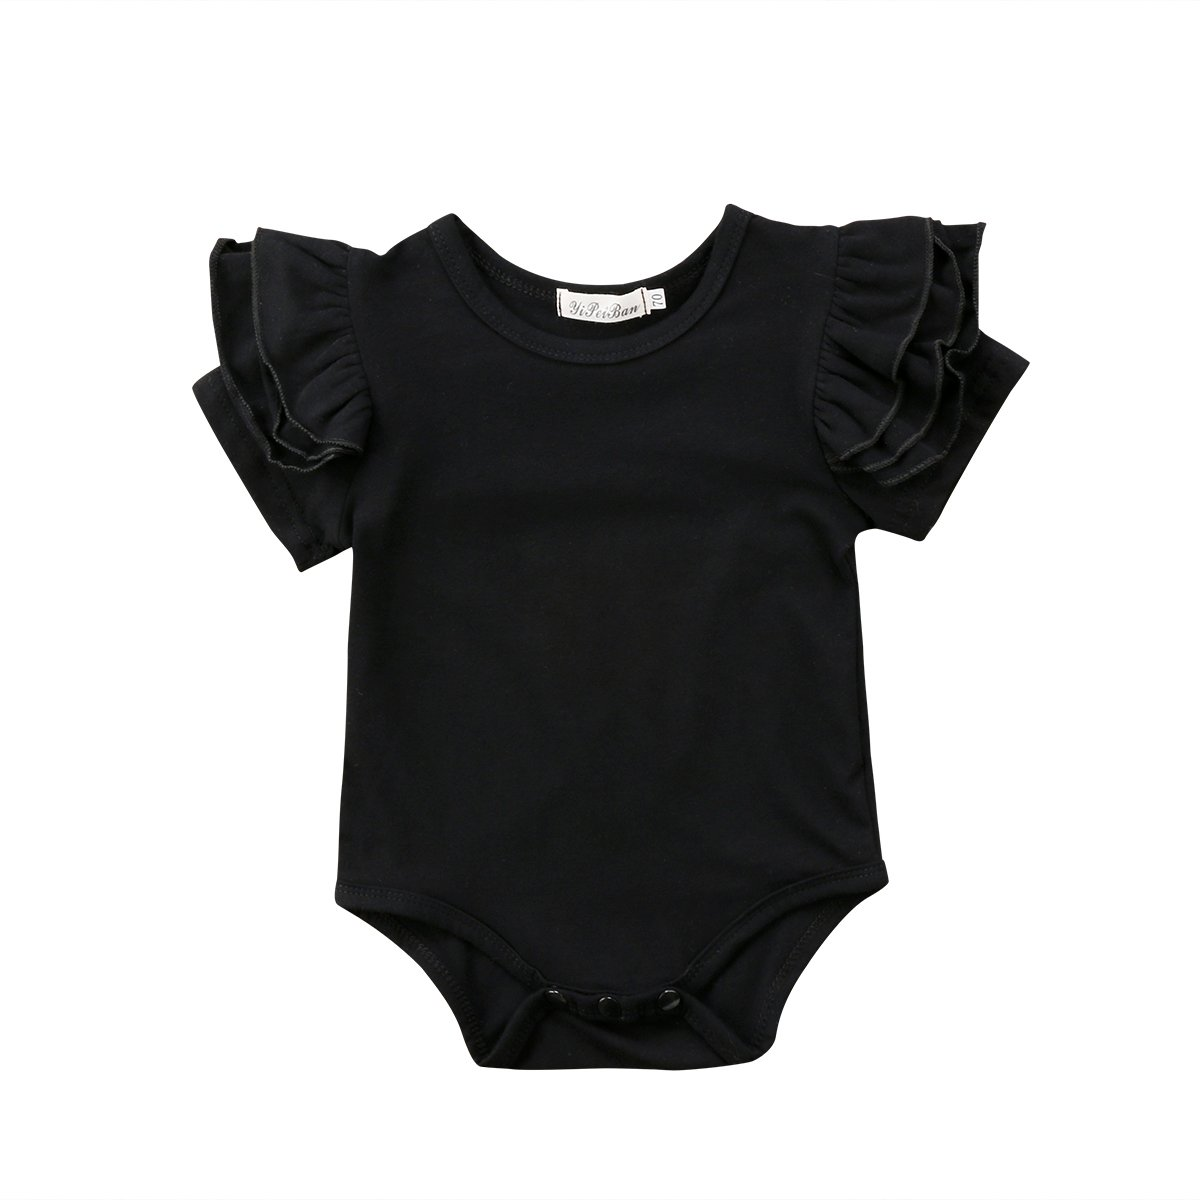 ITFABS Baby Girl Basic Tassel Ruffles Short Sleeve Solid Cotton Romper Bodysuit Jumpsuits Tops Clothes (Black, 12-24 Months)